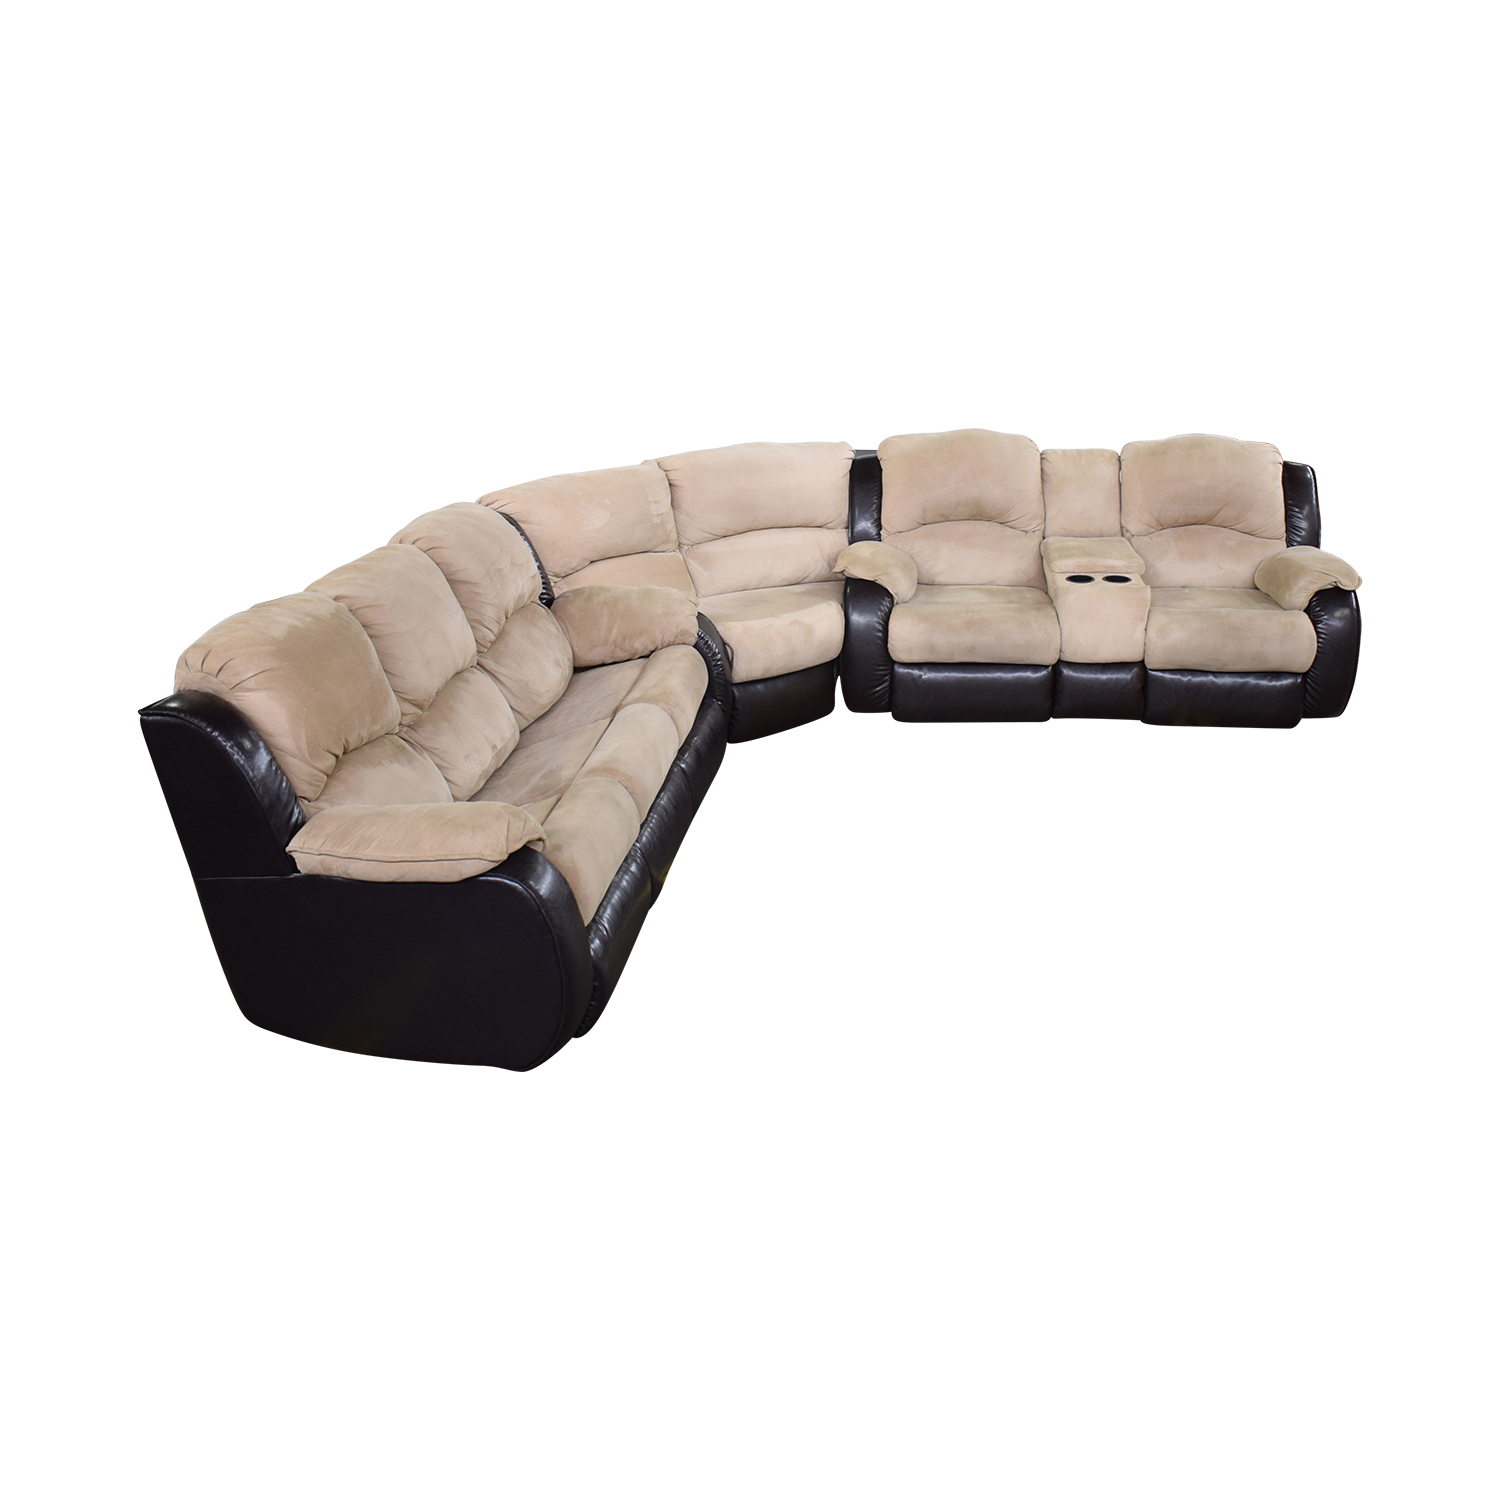 Southern Motion Reclining Sectional Sleeper Sofa sale